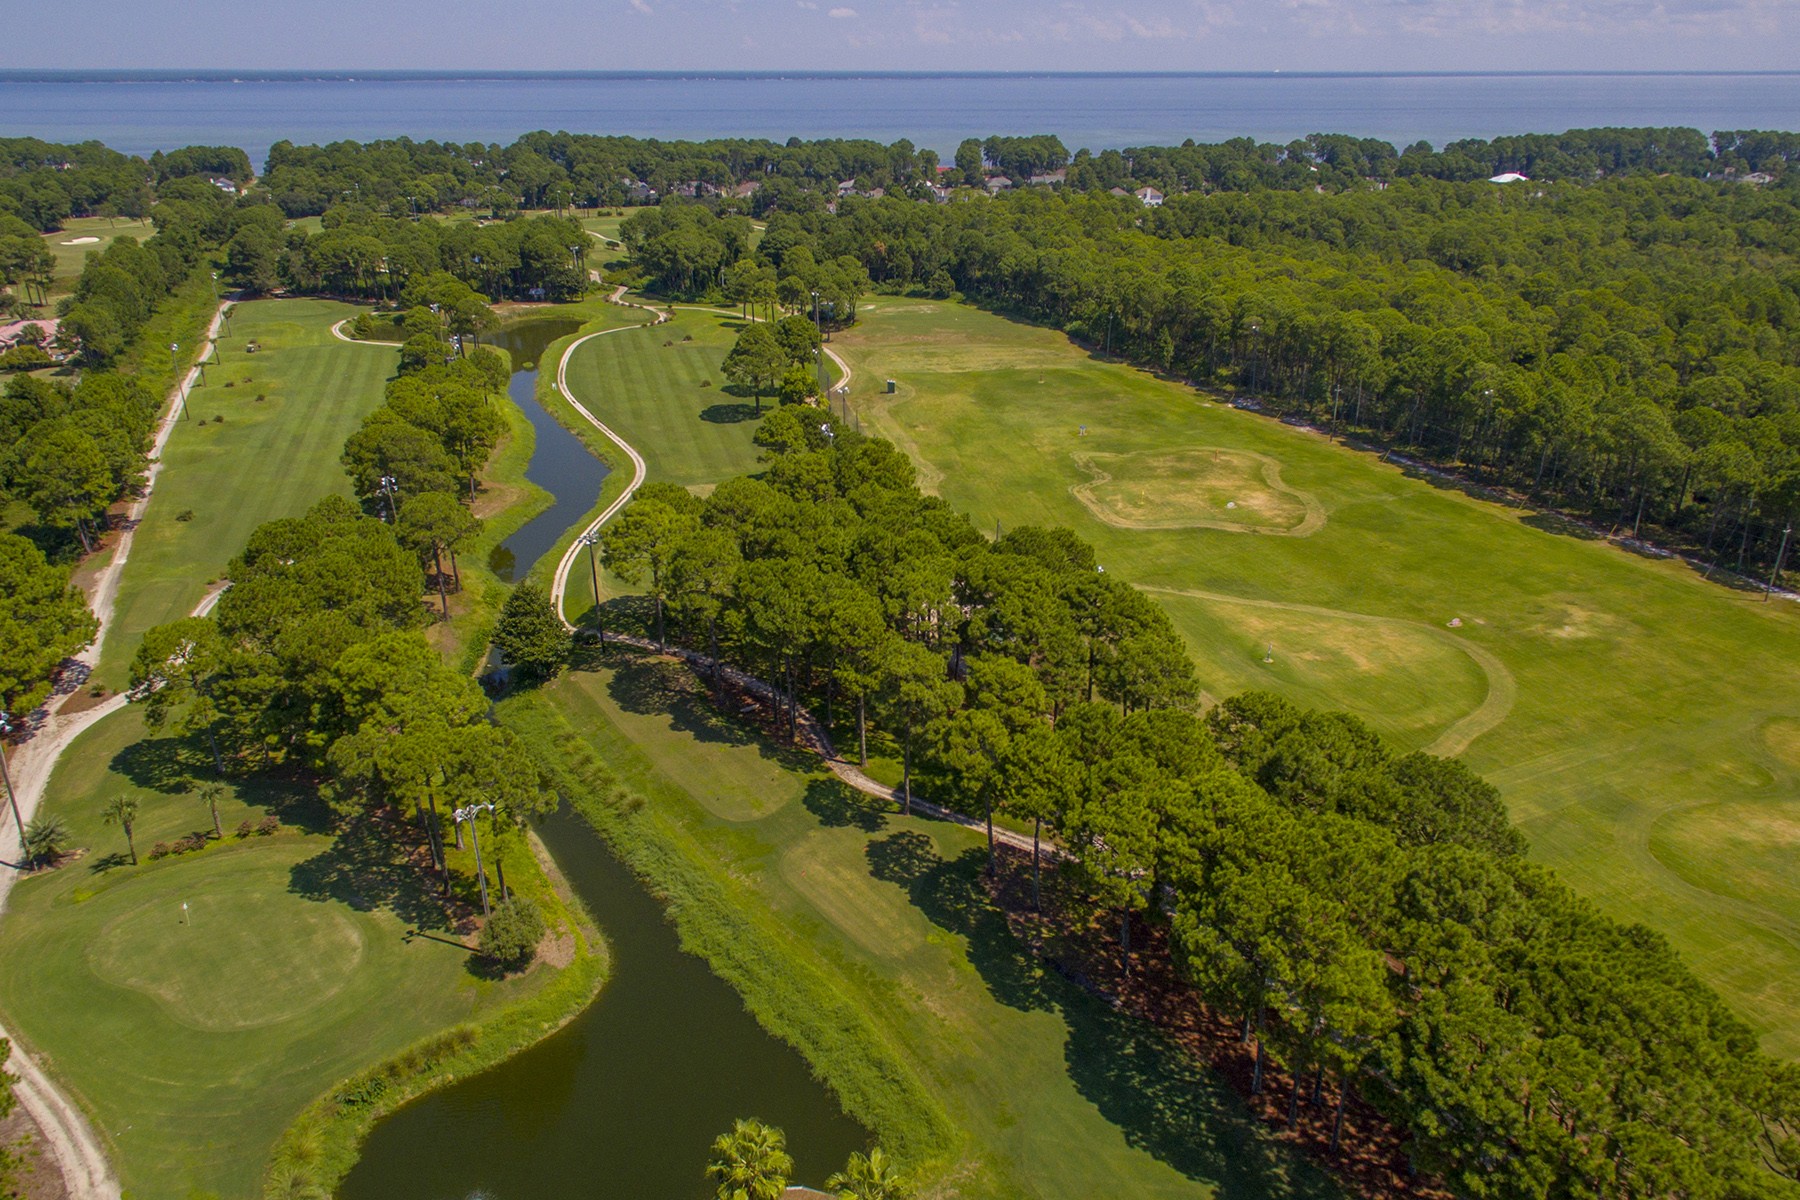 Terreno por un Venta en RARE GOLF PROPERTY IS LAST OF ITS KIND 12958 W US Highway 98 Miramar Beach, Florida, 32550 Estados Unidos